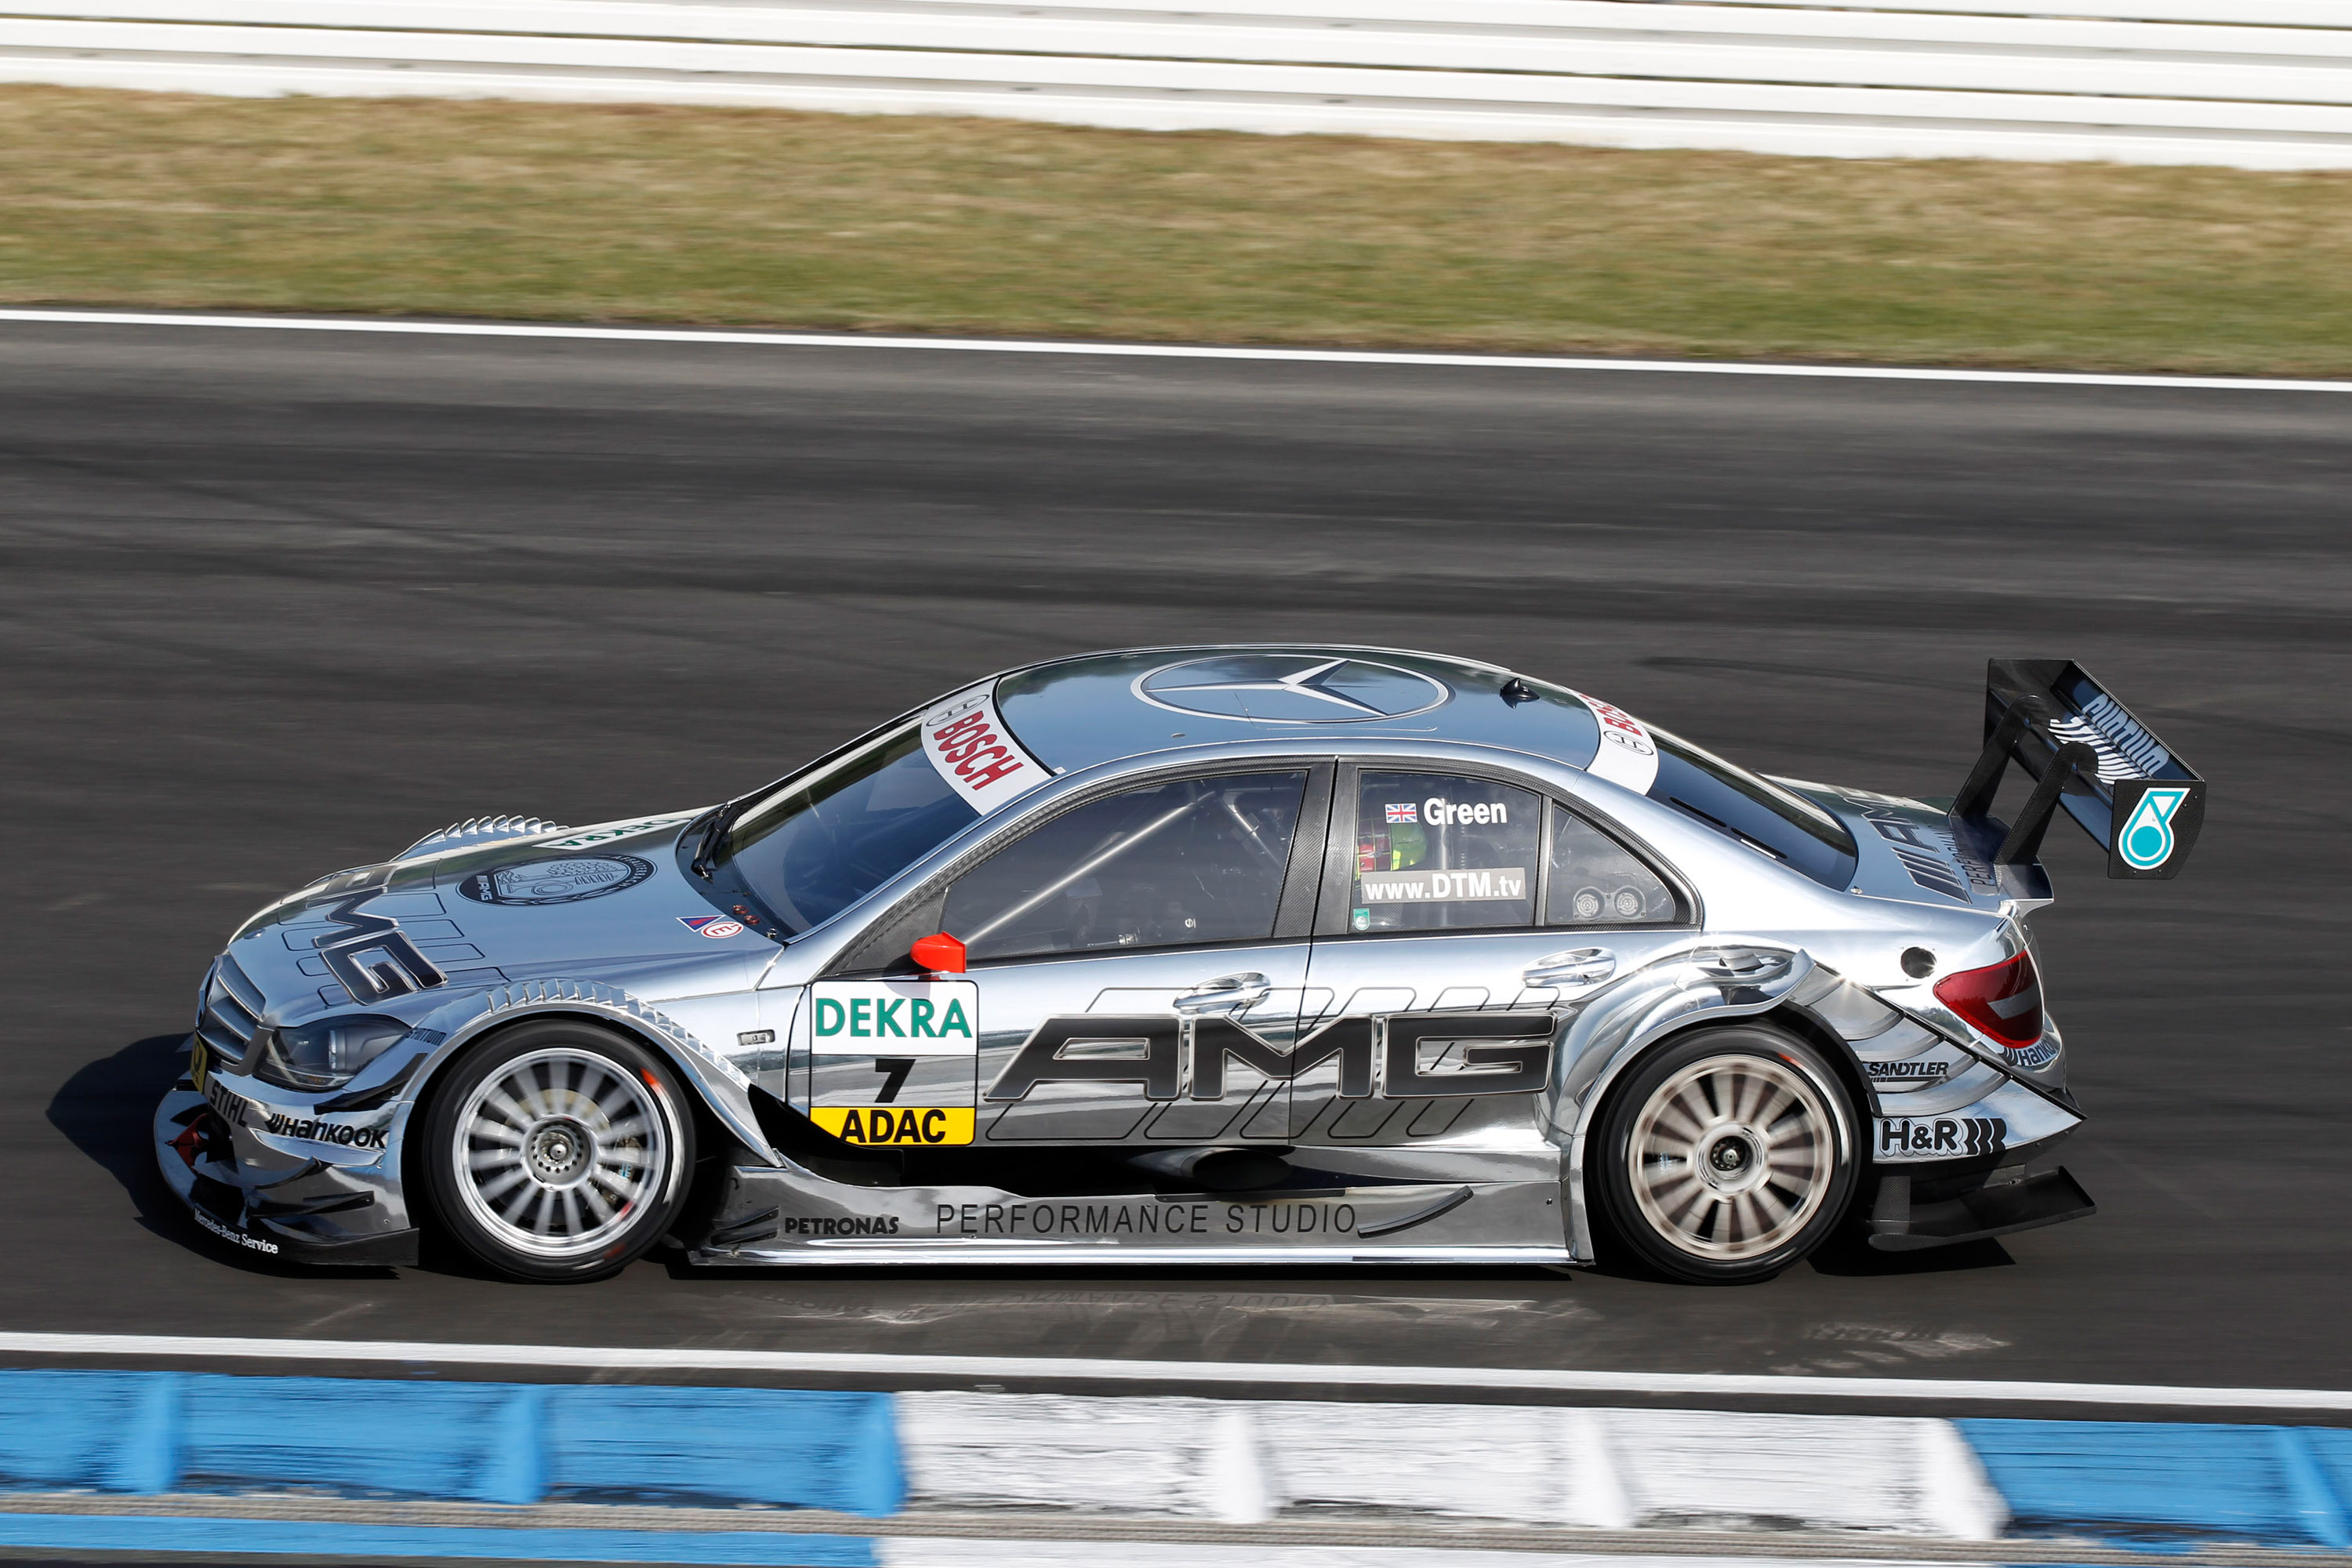 2011 dtm mercedes benz bank amg c class race racing f for Mercedes benz race